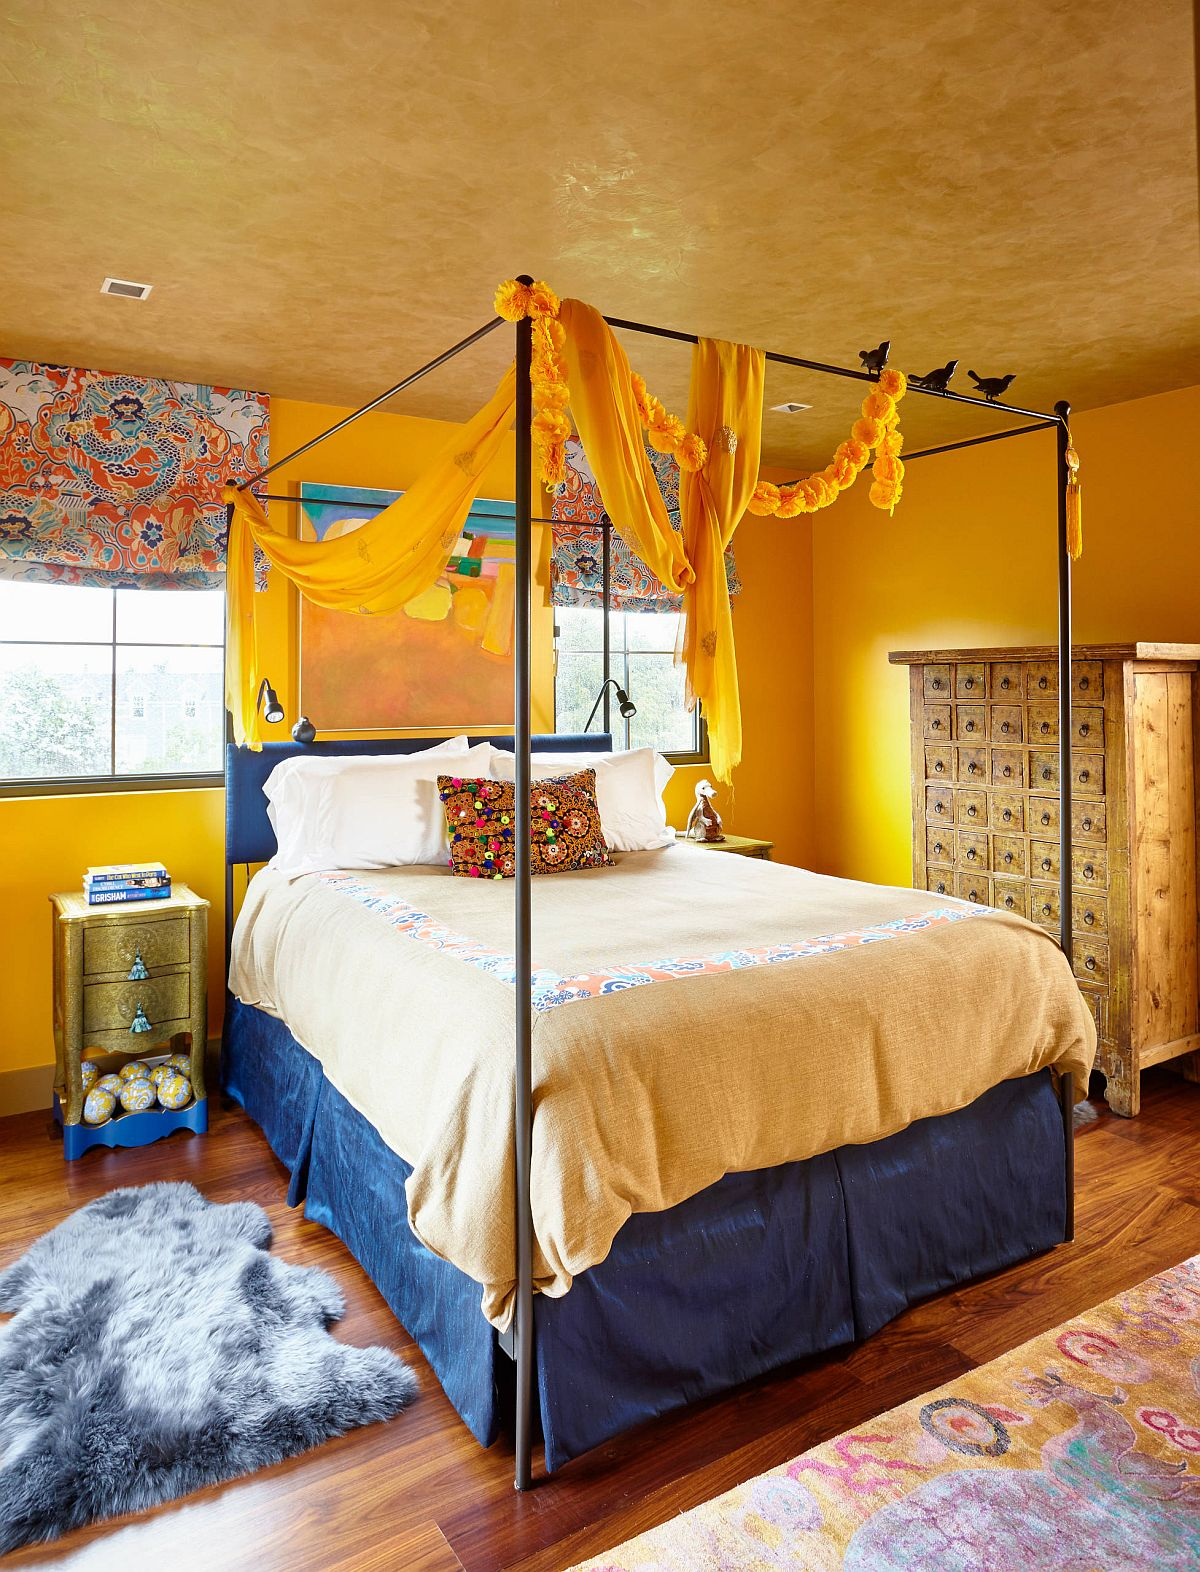 Textured-yellow-ceiling-steals-the-show-in-this-eclectic-edroom-with-a-bit-of-blue-as-well-79771